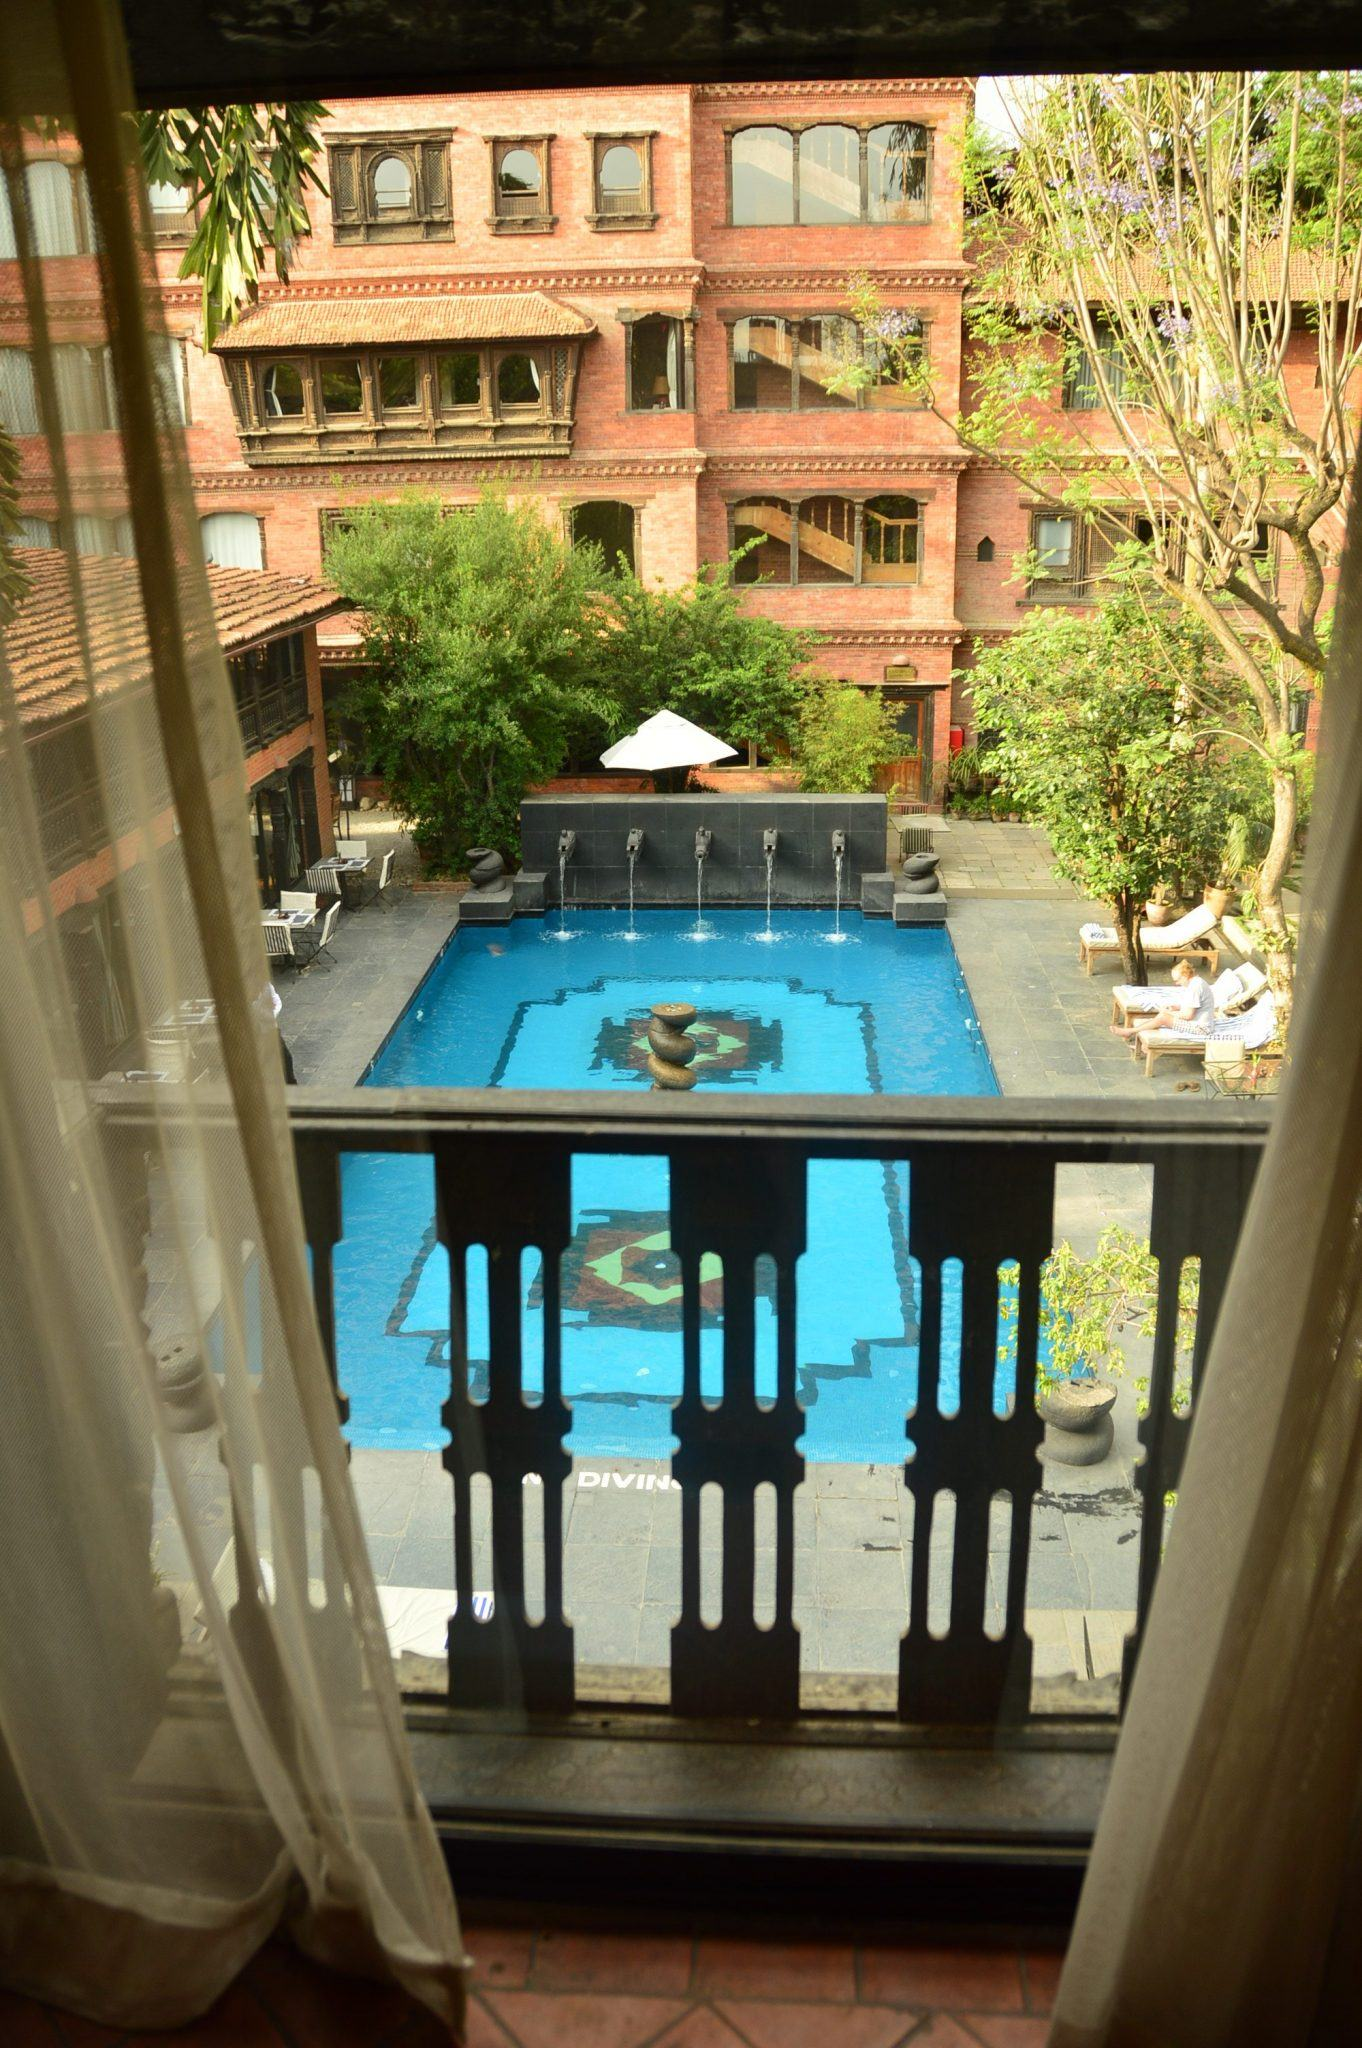 the pool at dwarika's kathmandu seen from a room